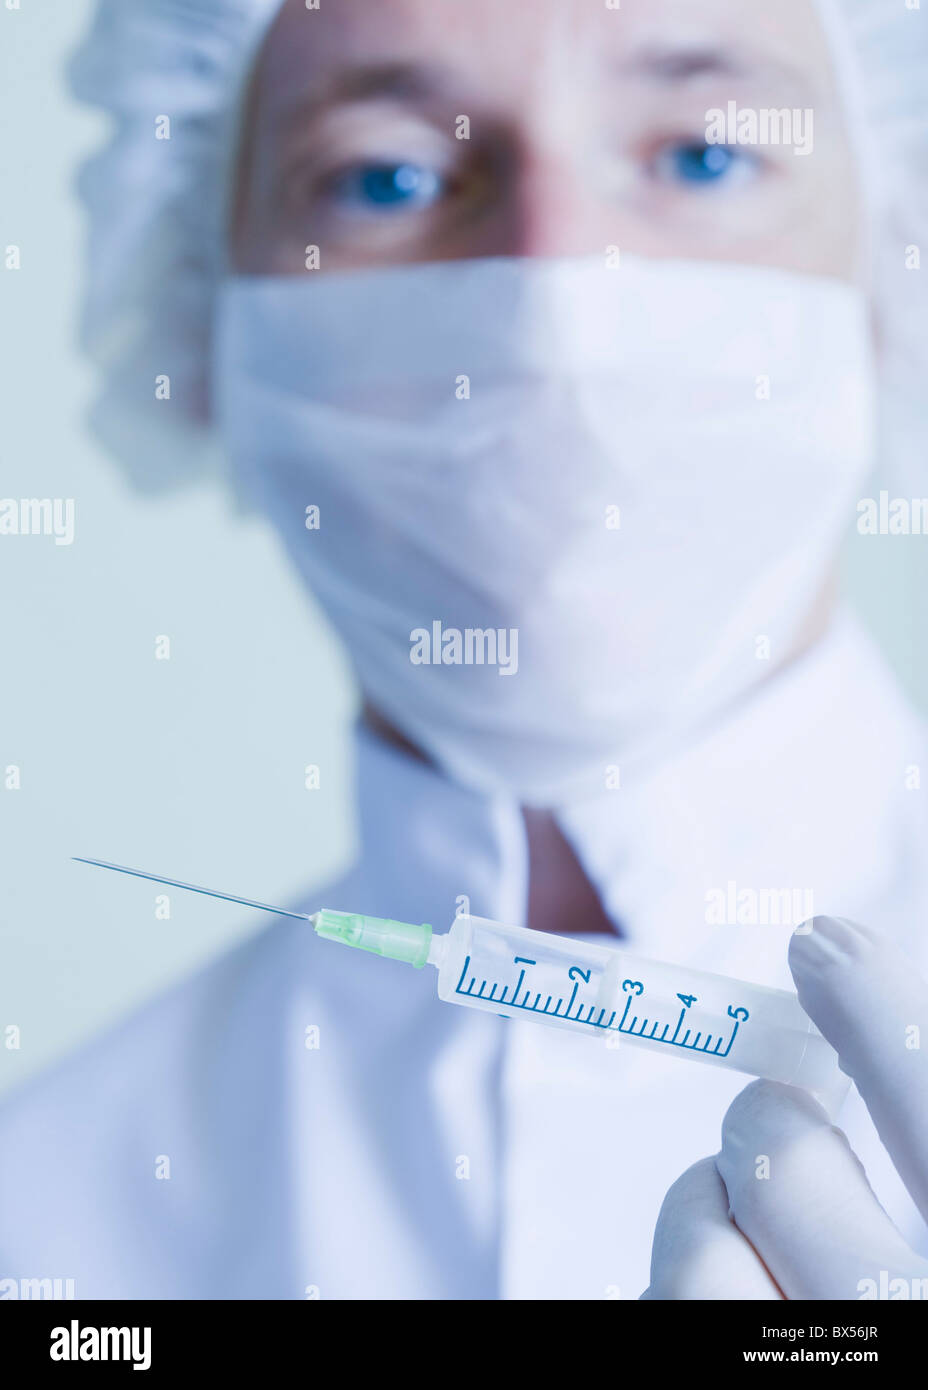 Injection - Stock Image